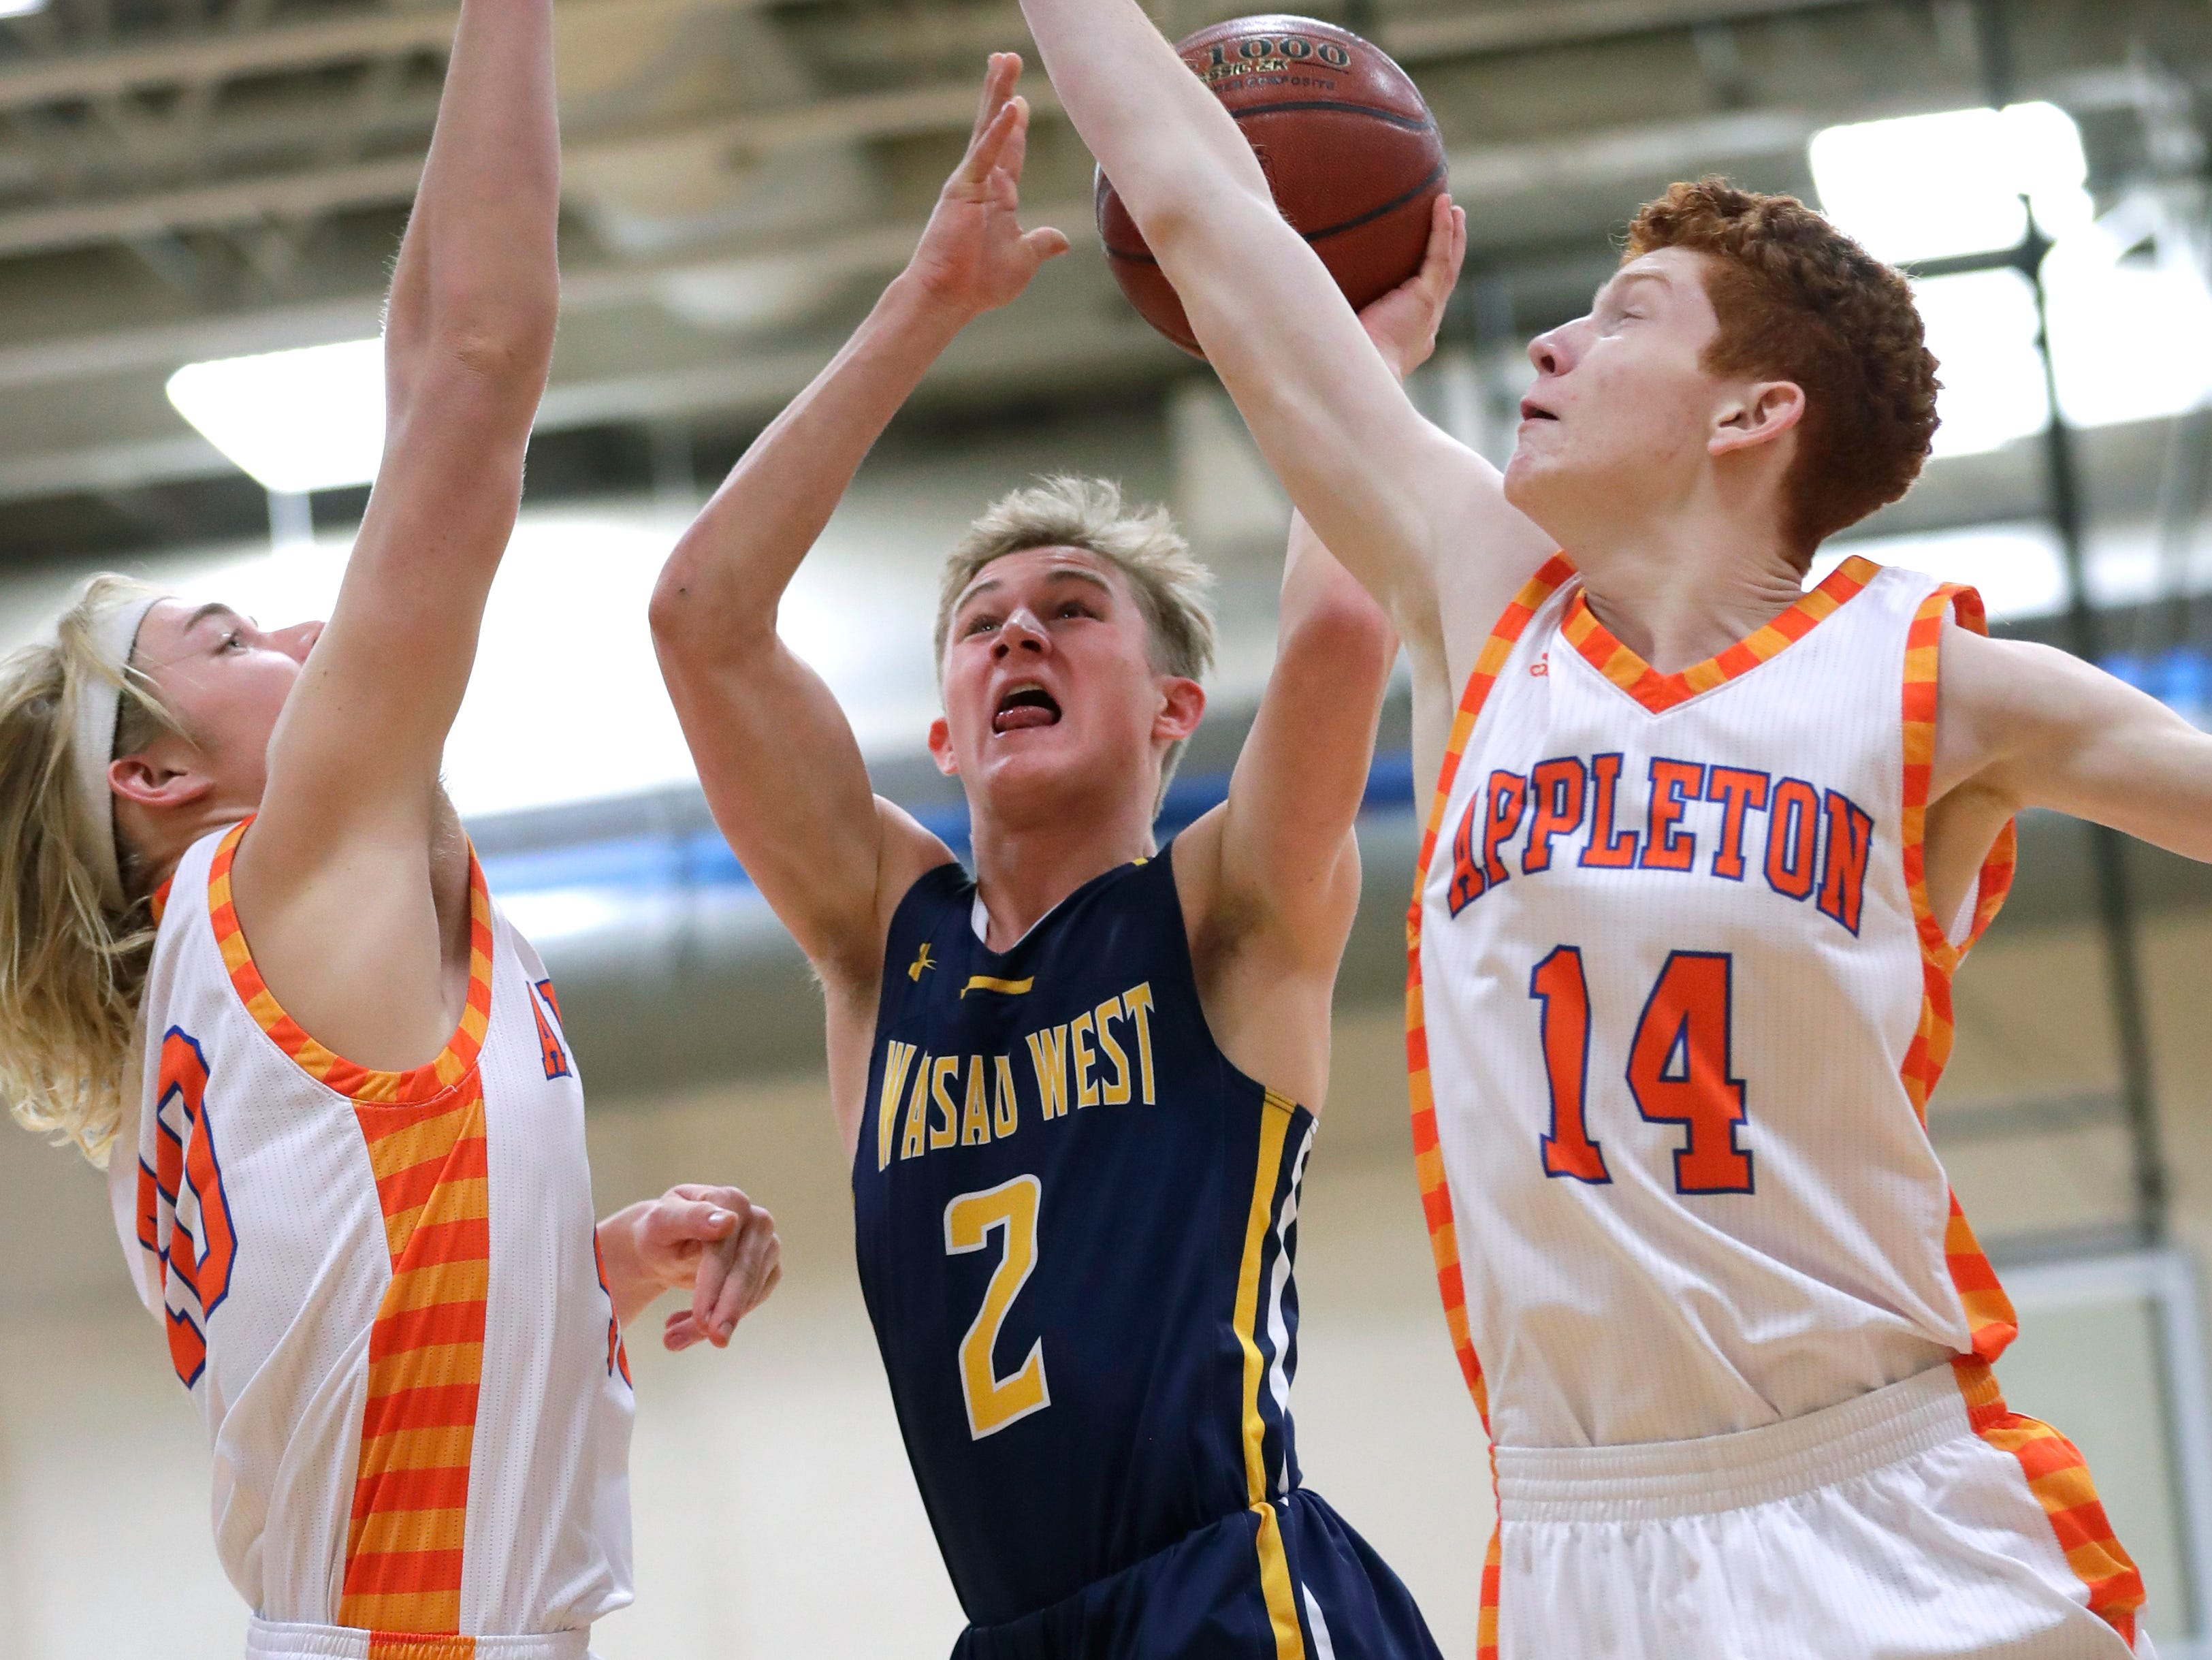 Appleton West  High School's Carson Hacker (40) and Colin Murray (14) defend against Wausau West High School's Mitchell Zahurones (2) during their boys basketball game Friday, December 28, 2018, in Appleton, Wis. Dan Powers/USA TODAY NETWORK-Wisconsin